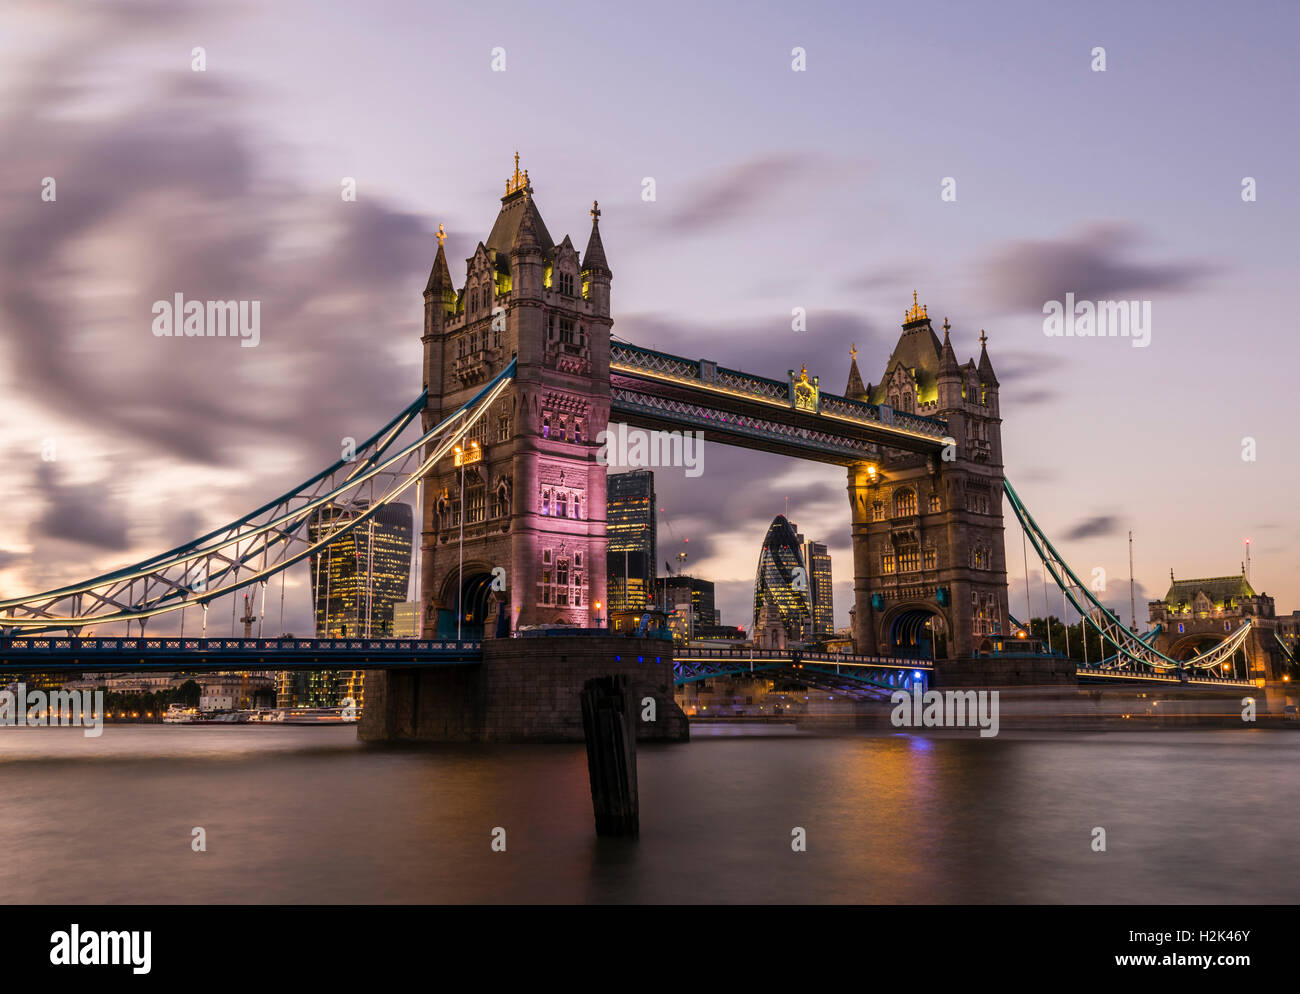 Lights and boats captured at sunset around Tower Bridge, London, UK - Stock Image